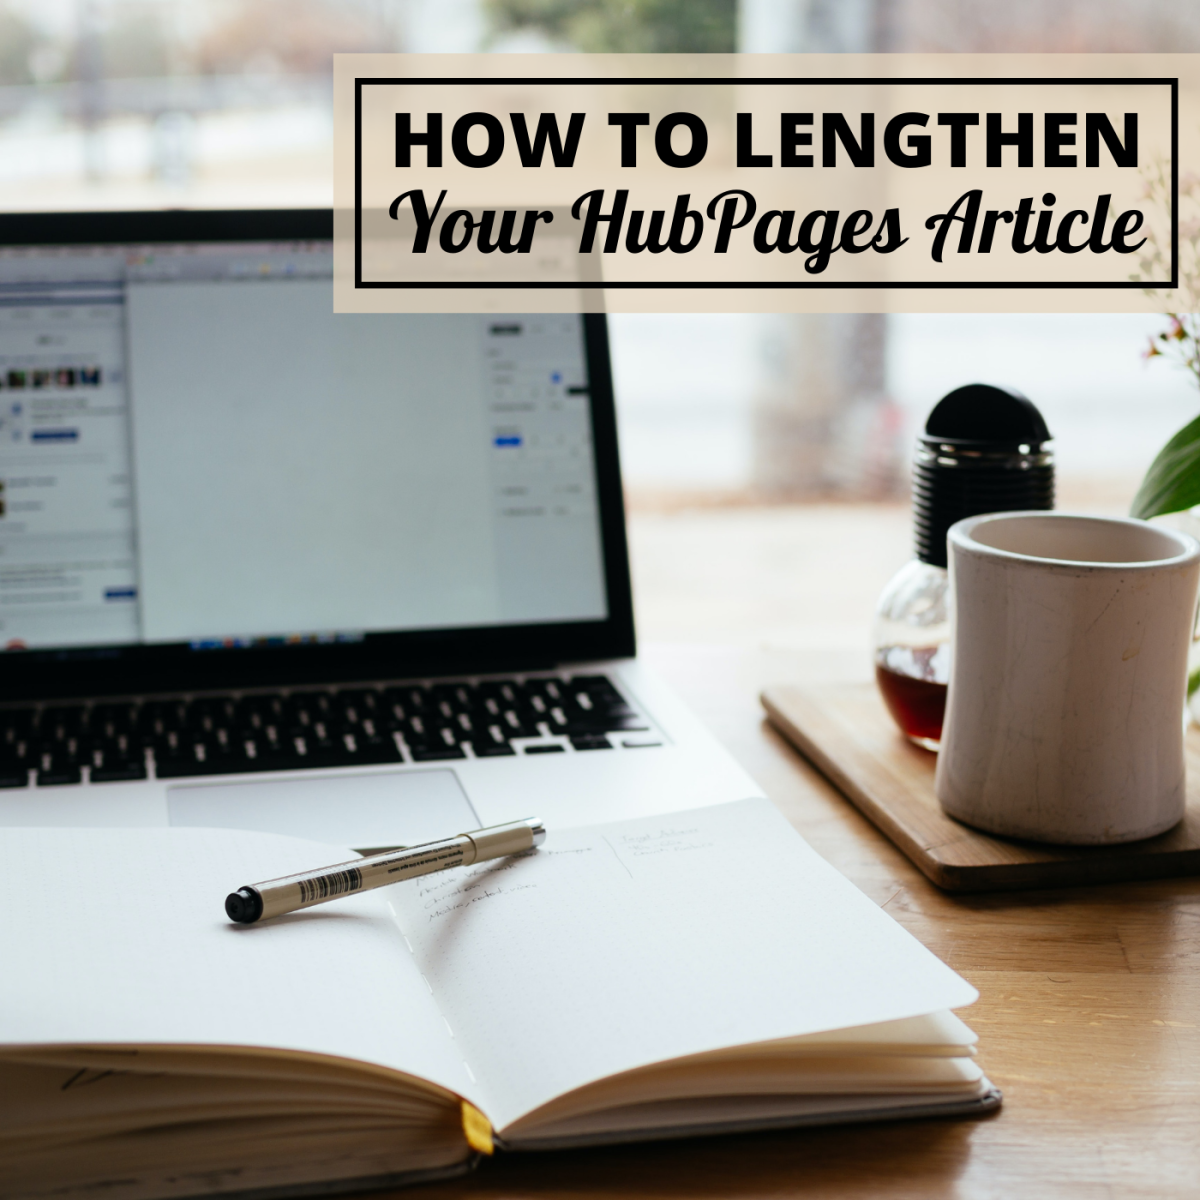 Ideas and Tips for Making Your HubPages Article Longer